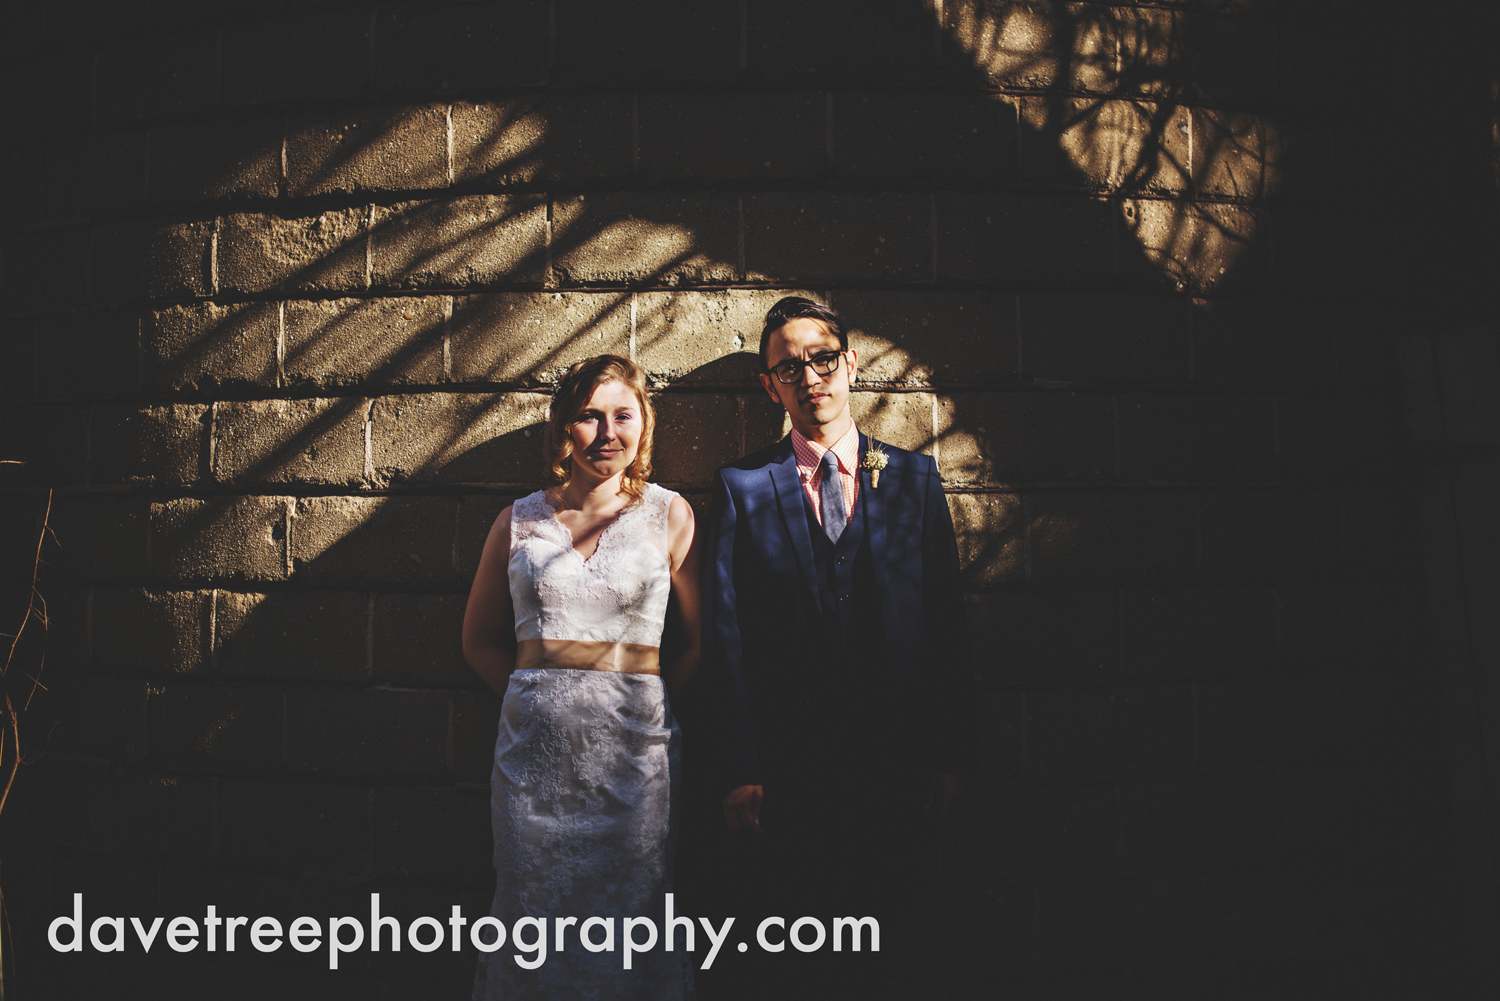 benton_harbor_wedding_photographer_blue_dress_barn_10.jpg